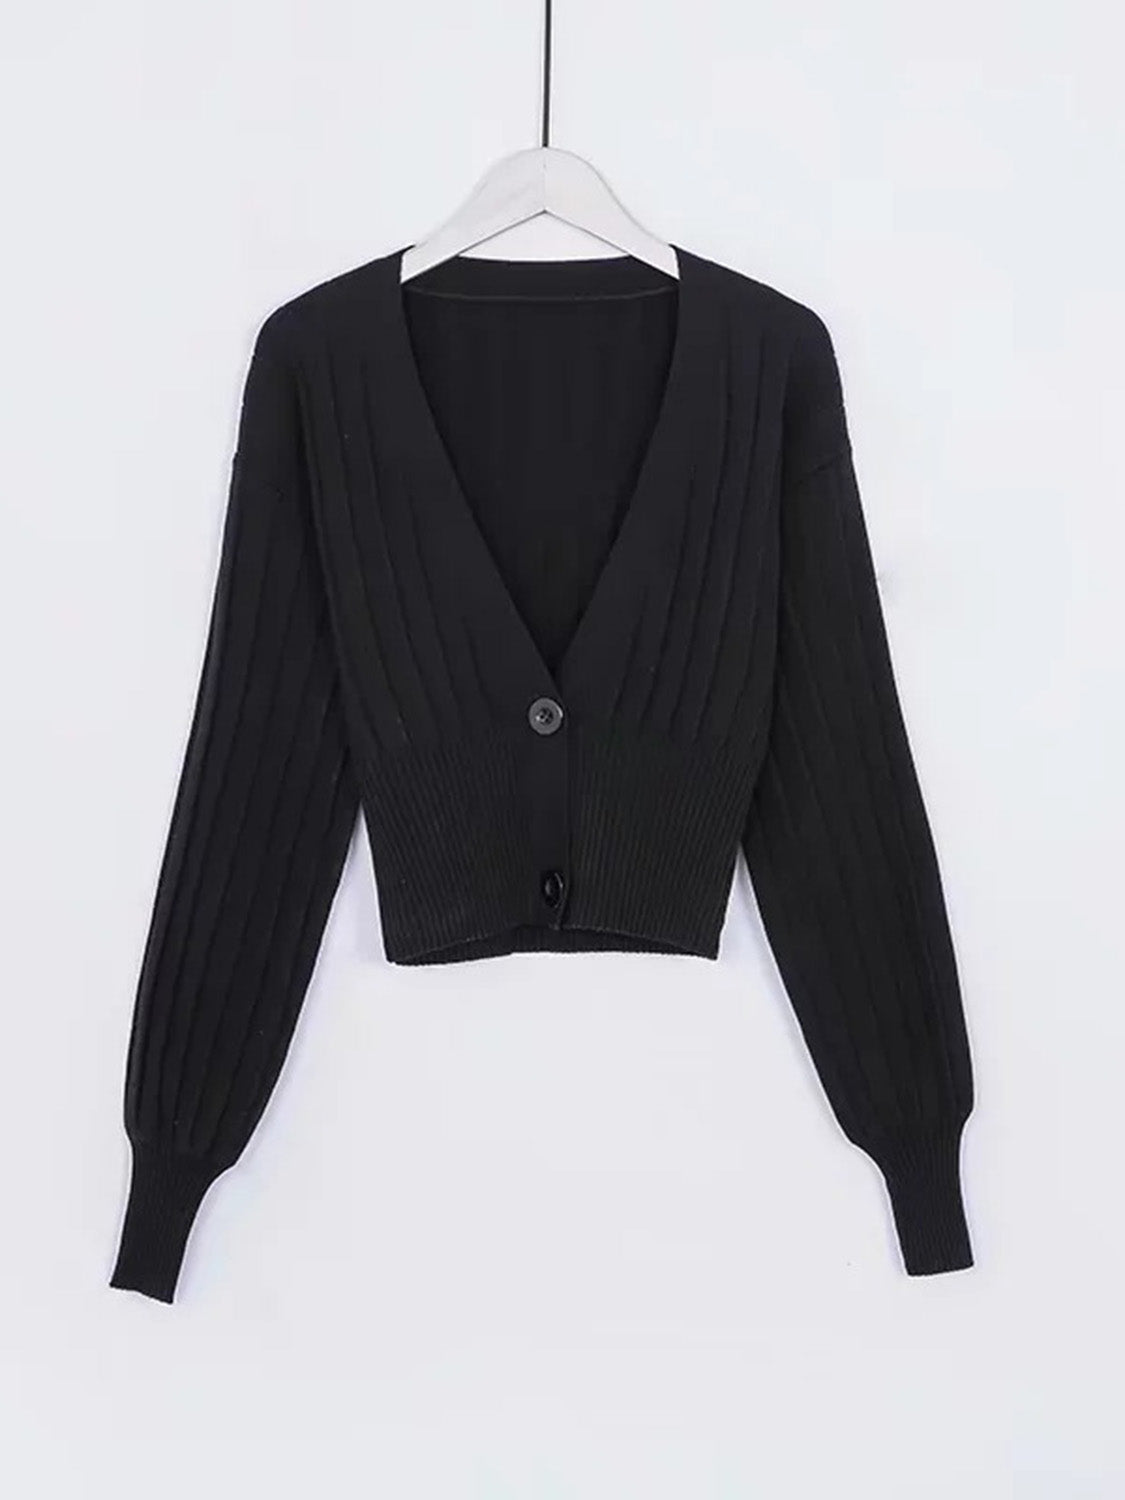 Black Women Sweater V-neck Button Placket Front Long Sleeve